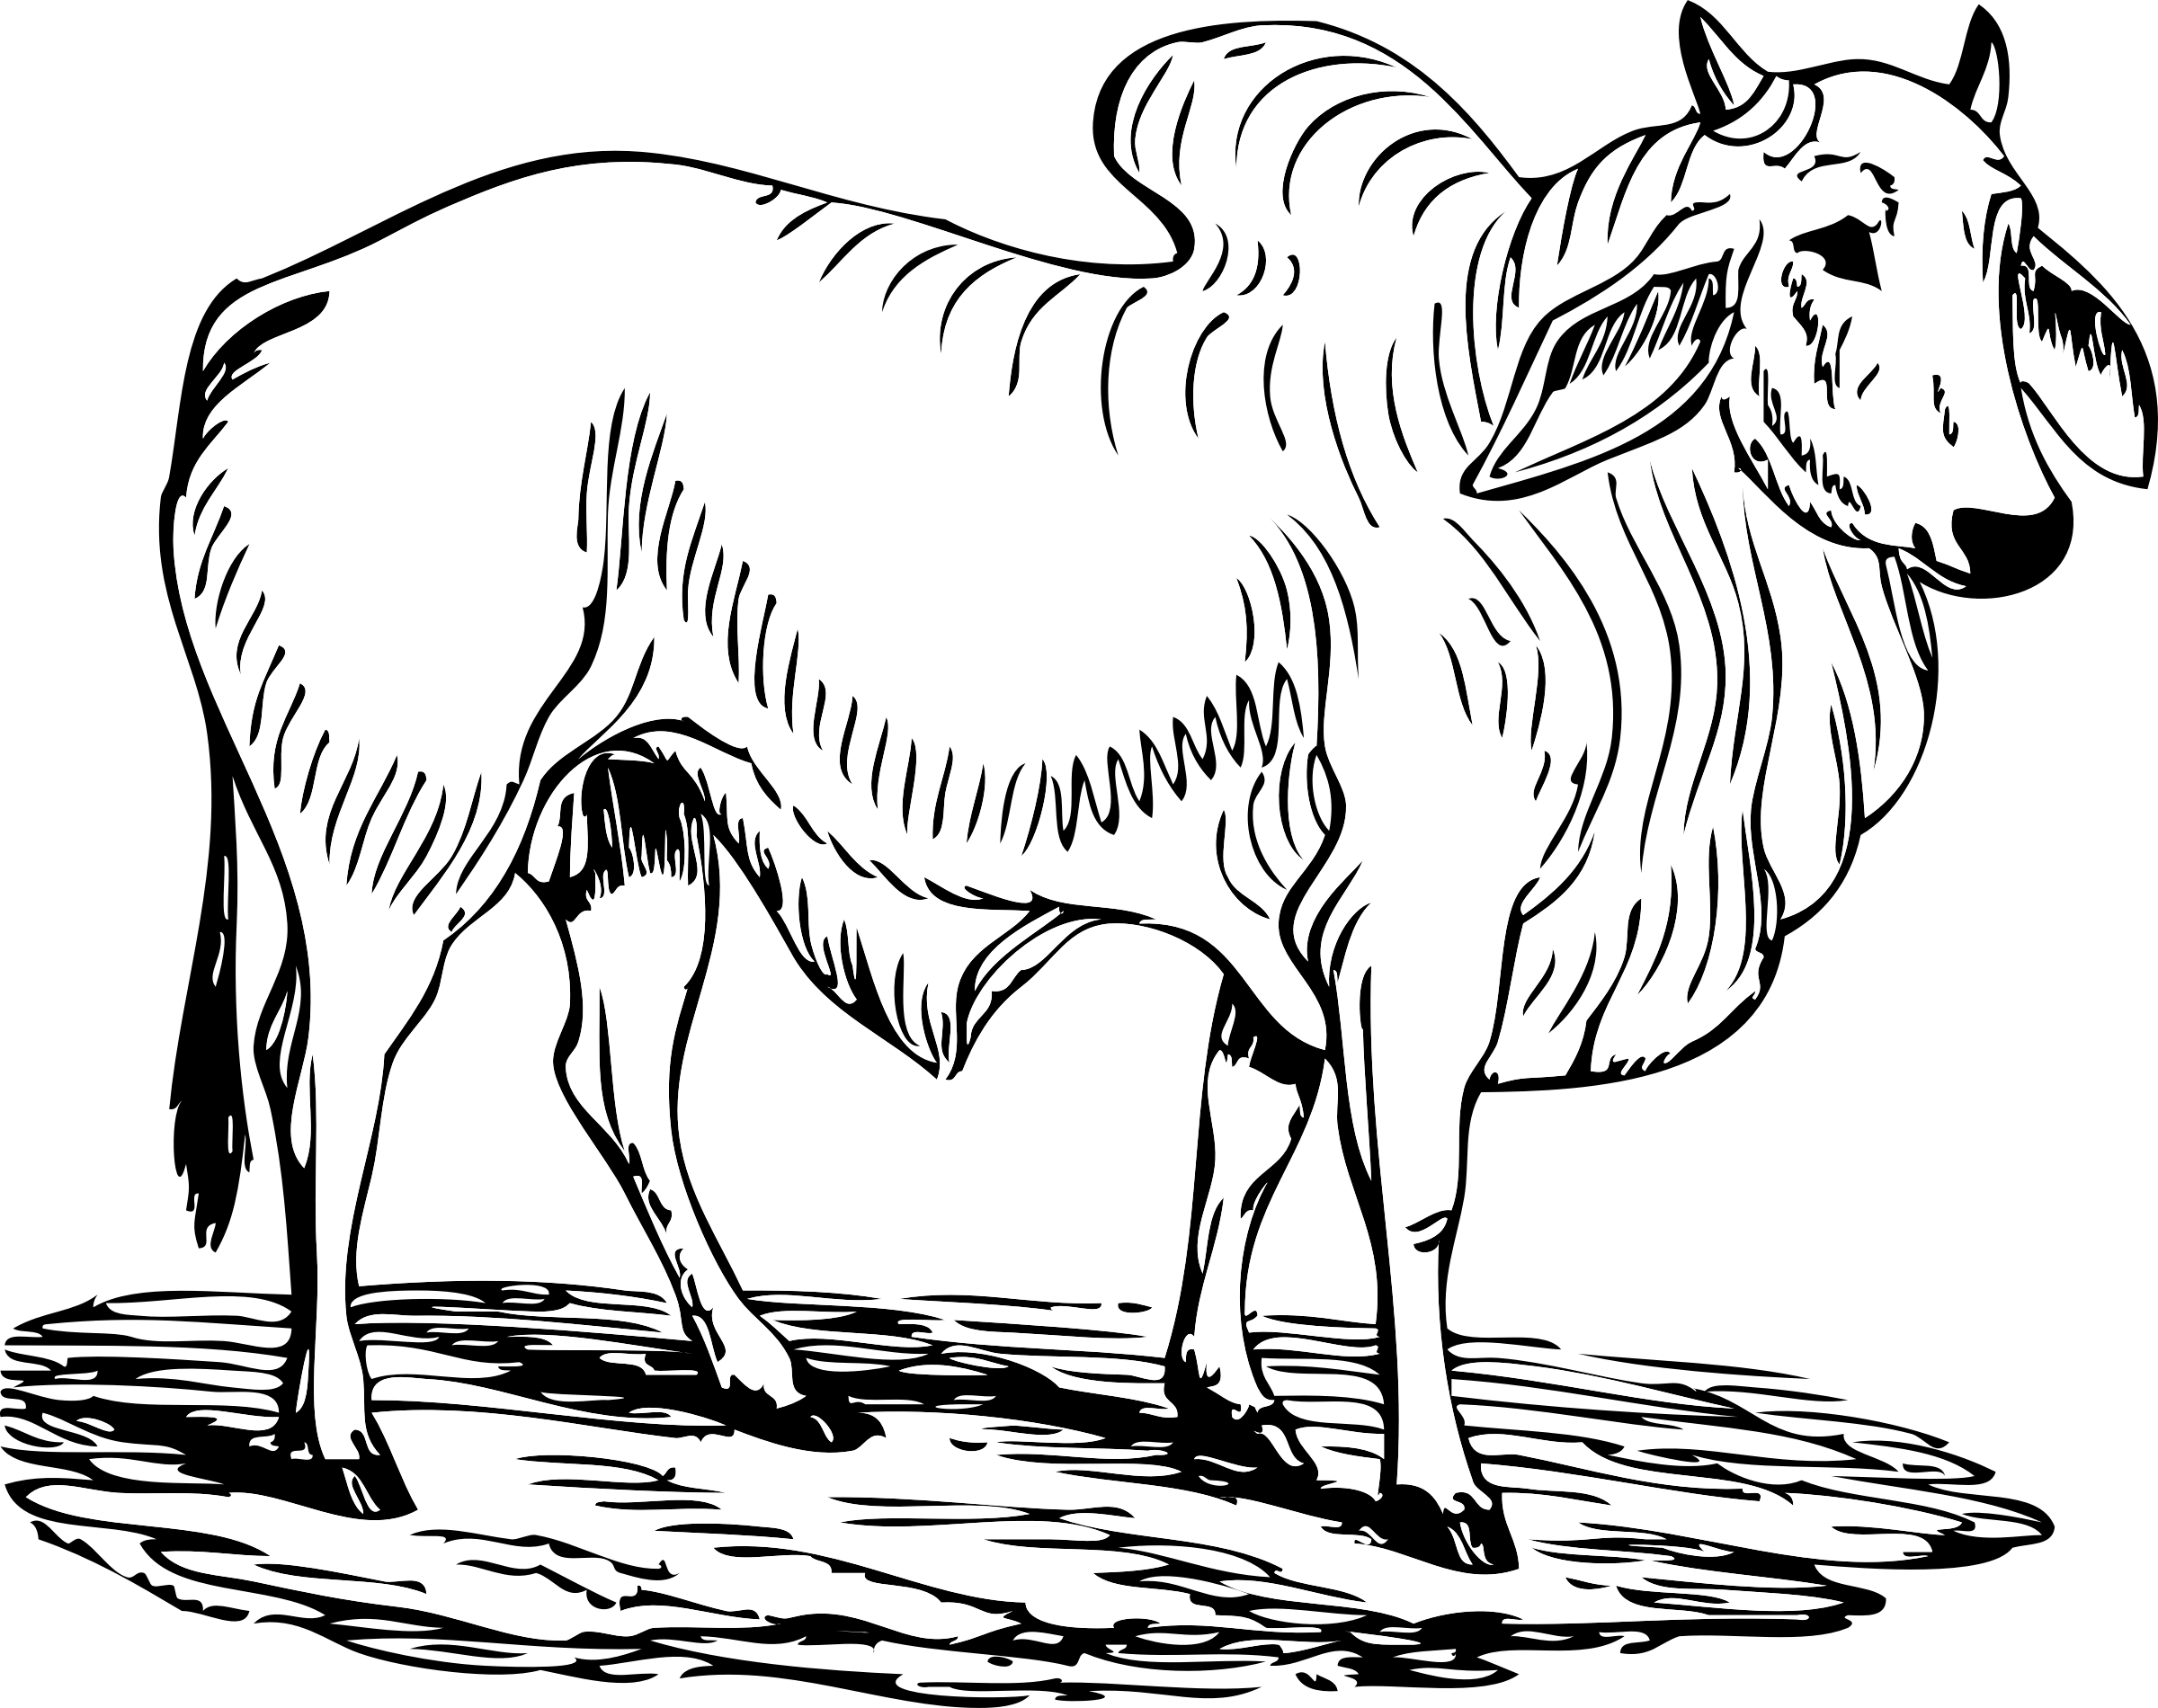 HD This Free Icons Png Design Of Brahma Bull.